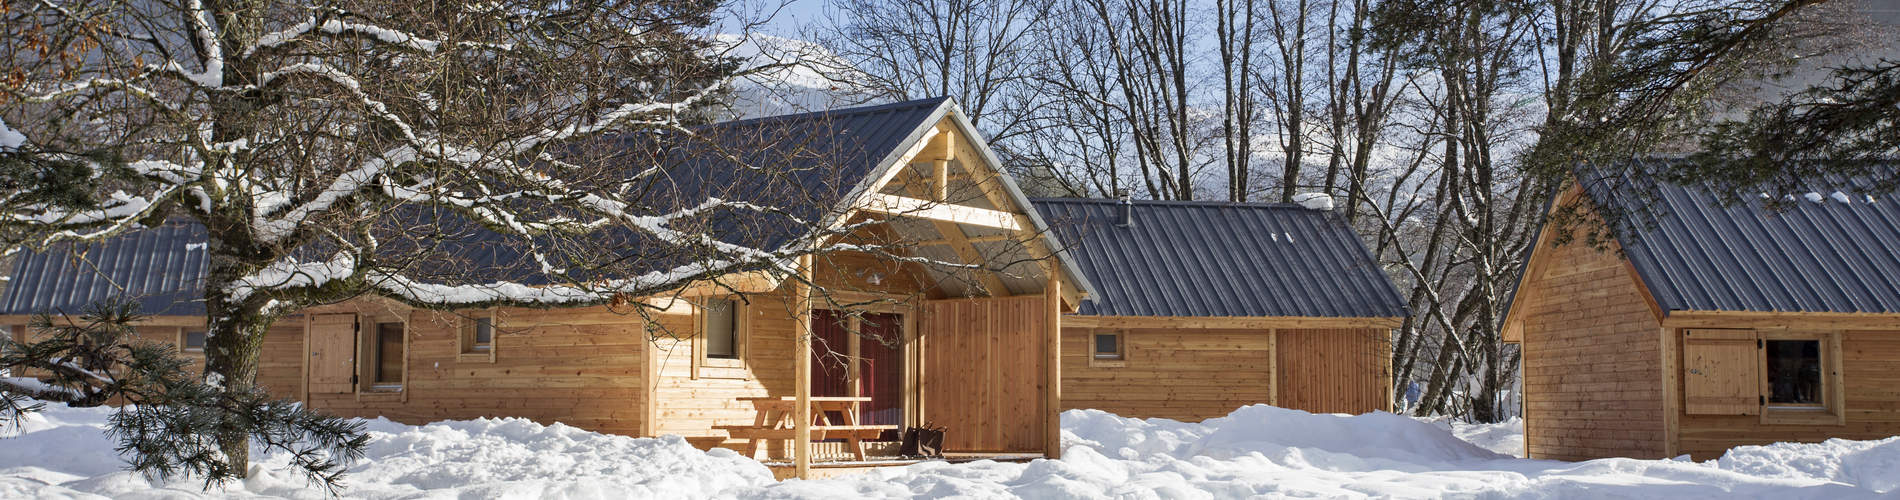 camping_huttopia_bourg_saint_maurice_chalets_bois